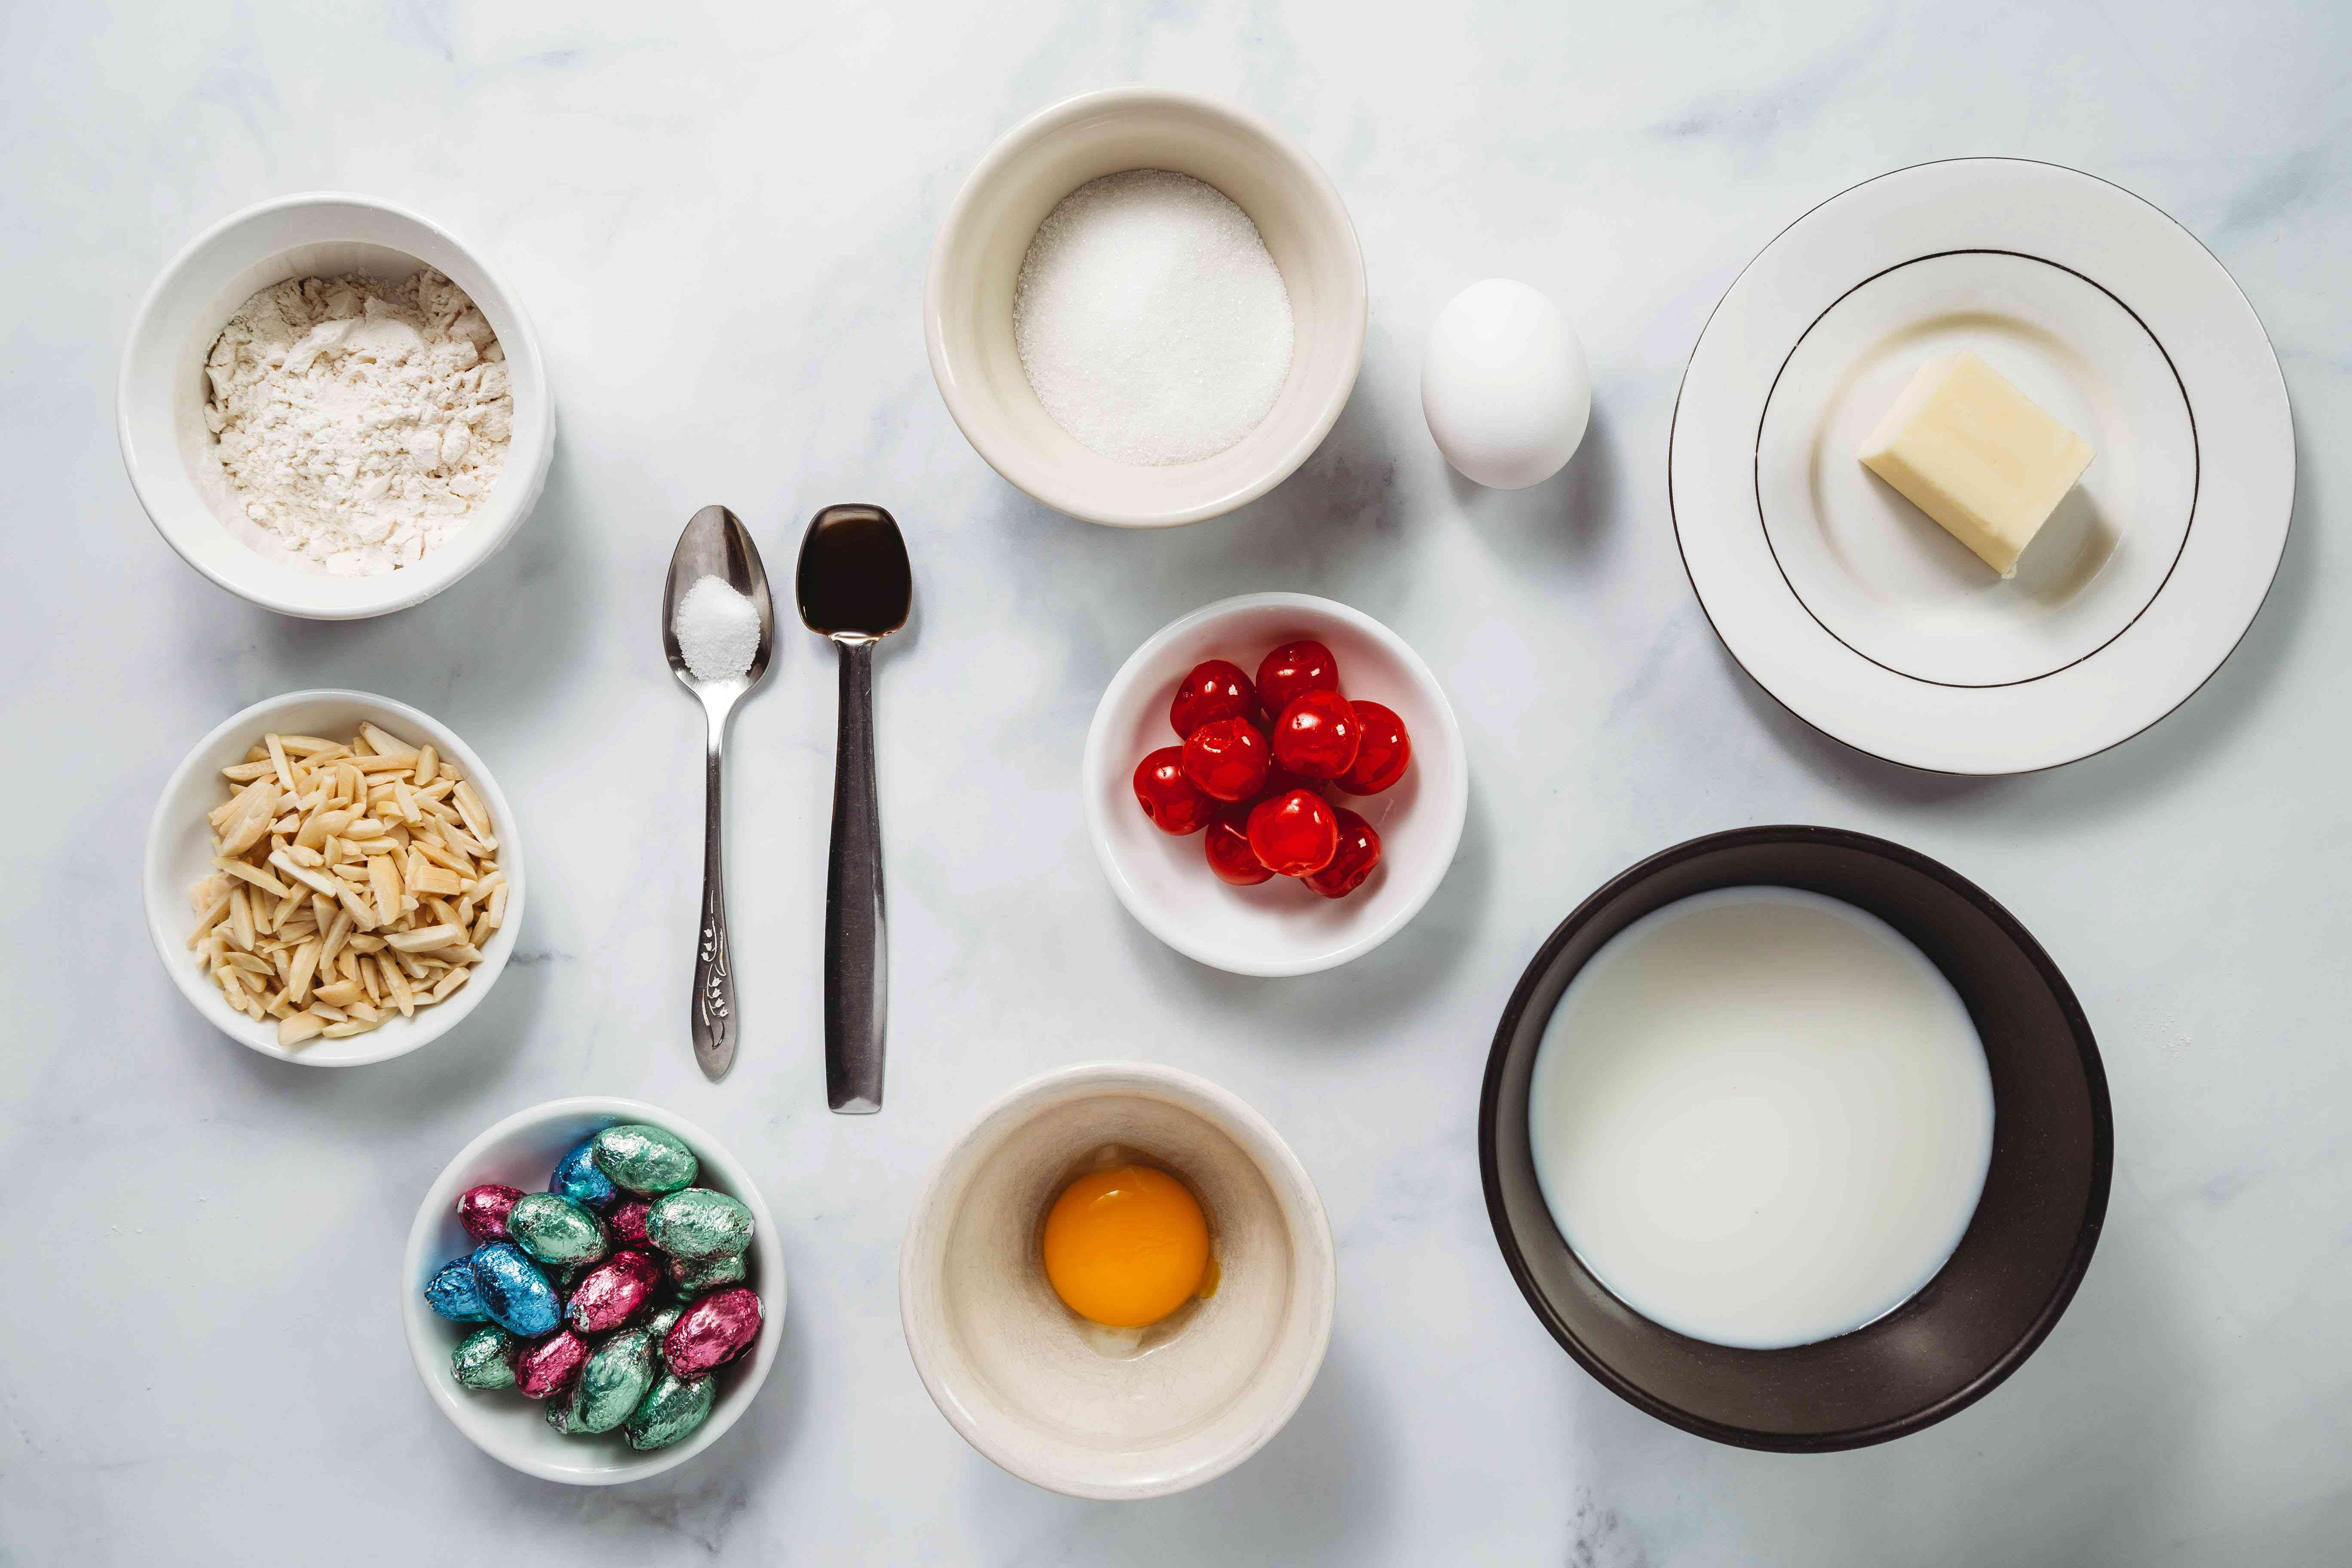 Pastry cream ingredients and decorations